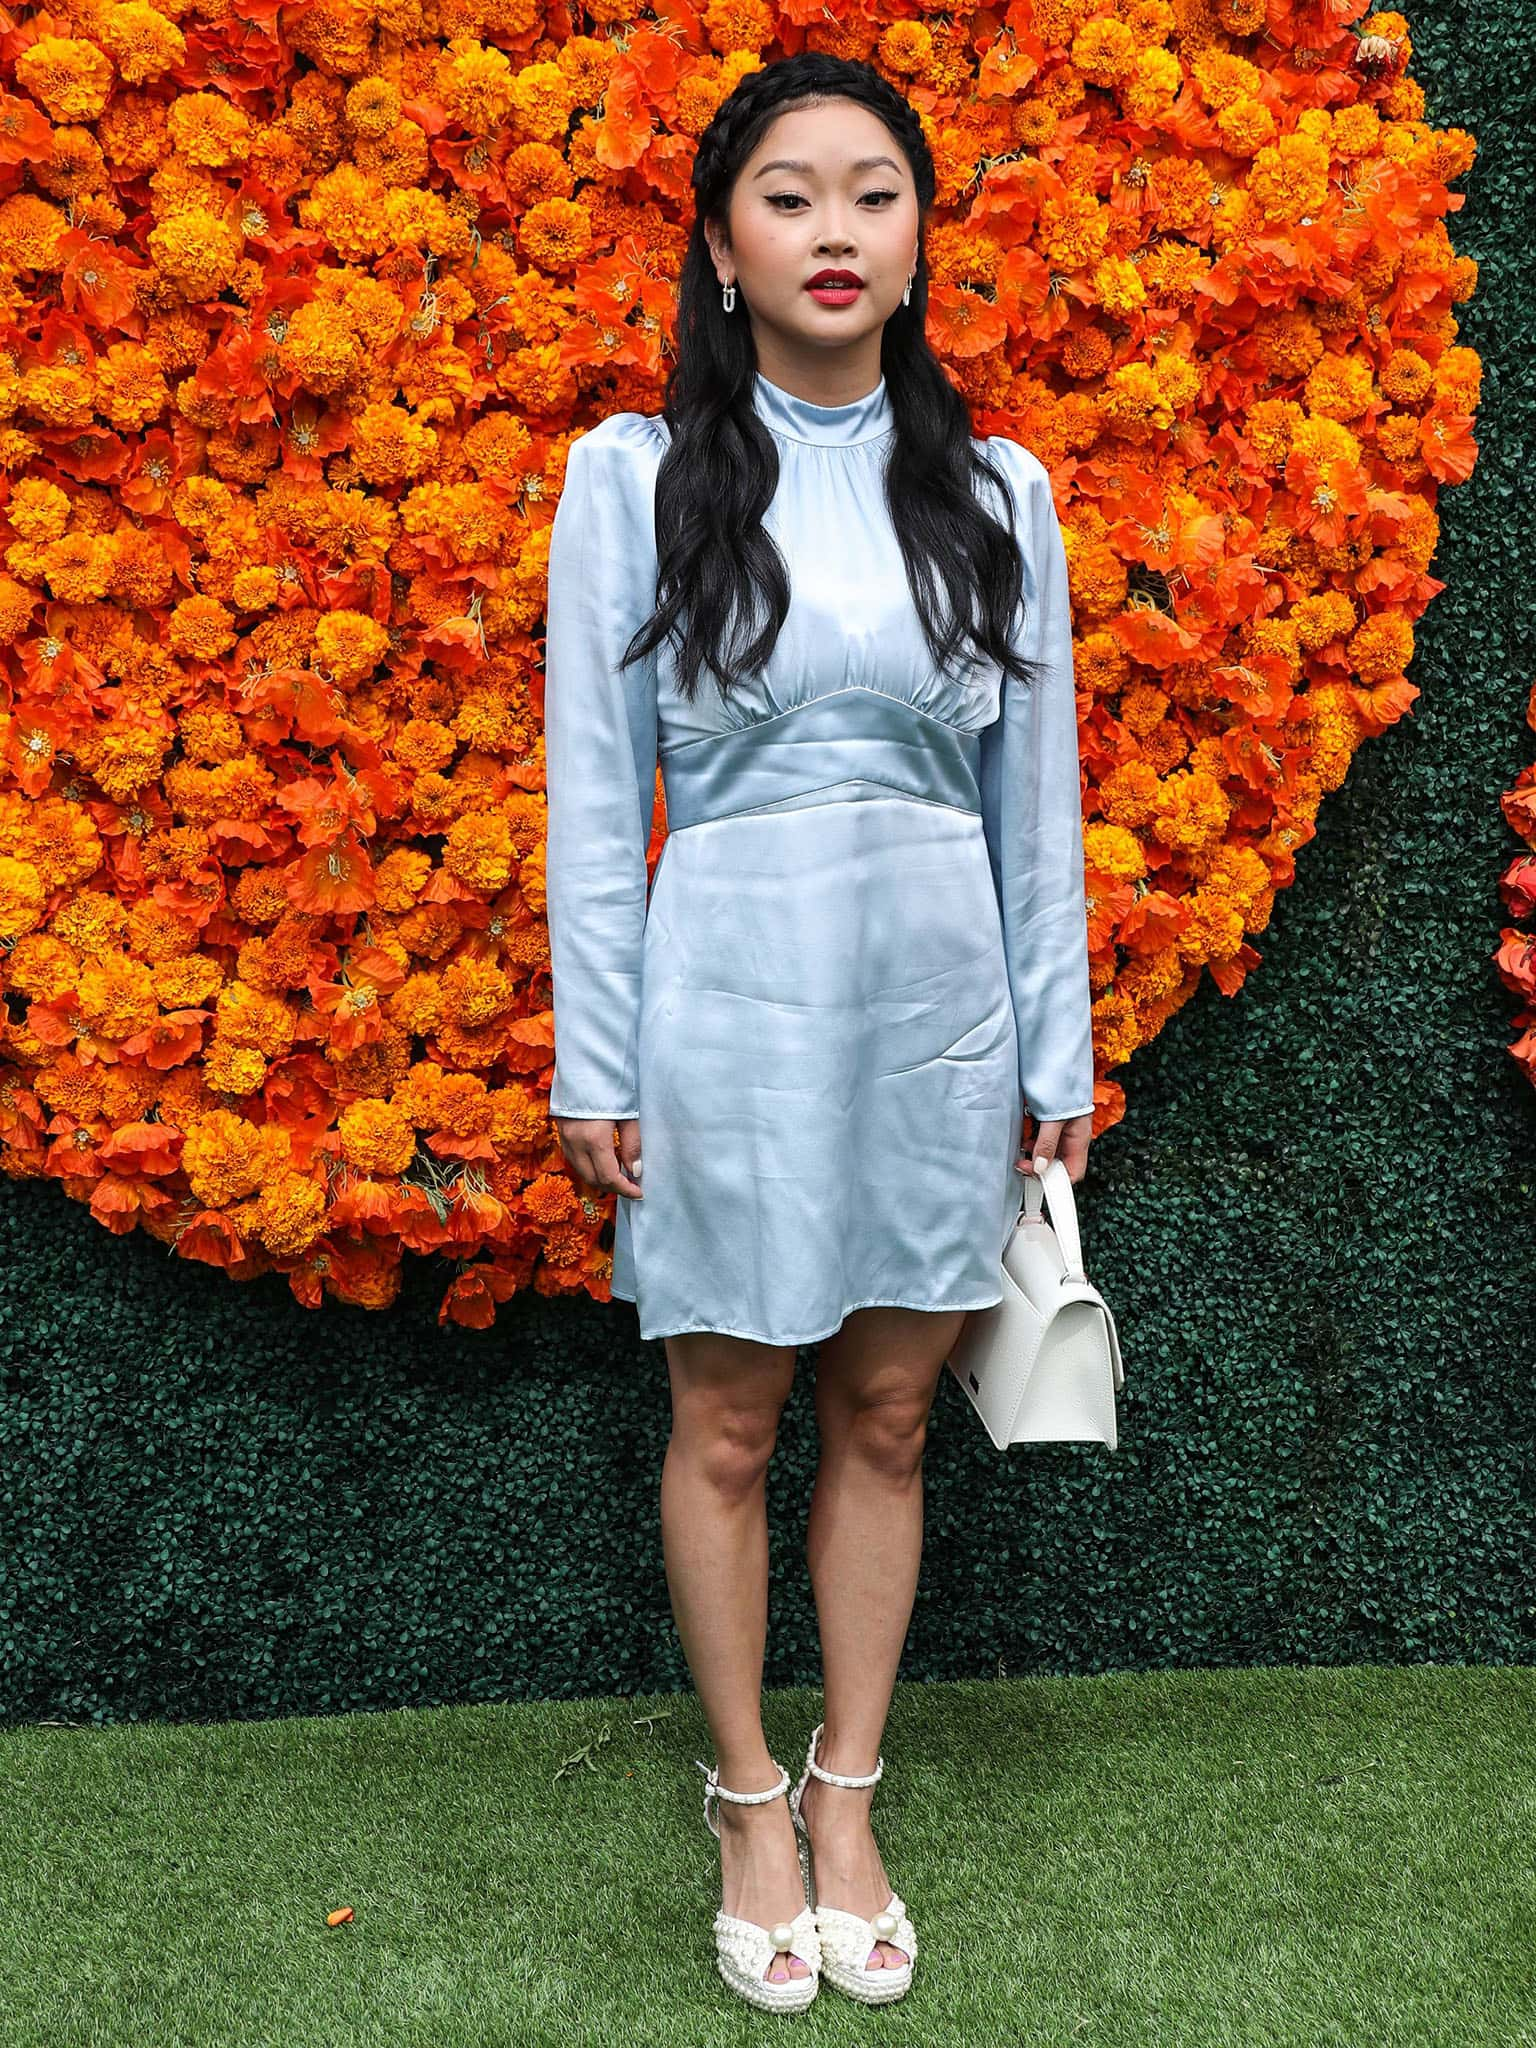 Lana Condor at the Veuve Clicquot Polo Classic Los Angeles 2021 held at the Will Rogers State Historic Park on October 2, 2021